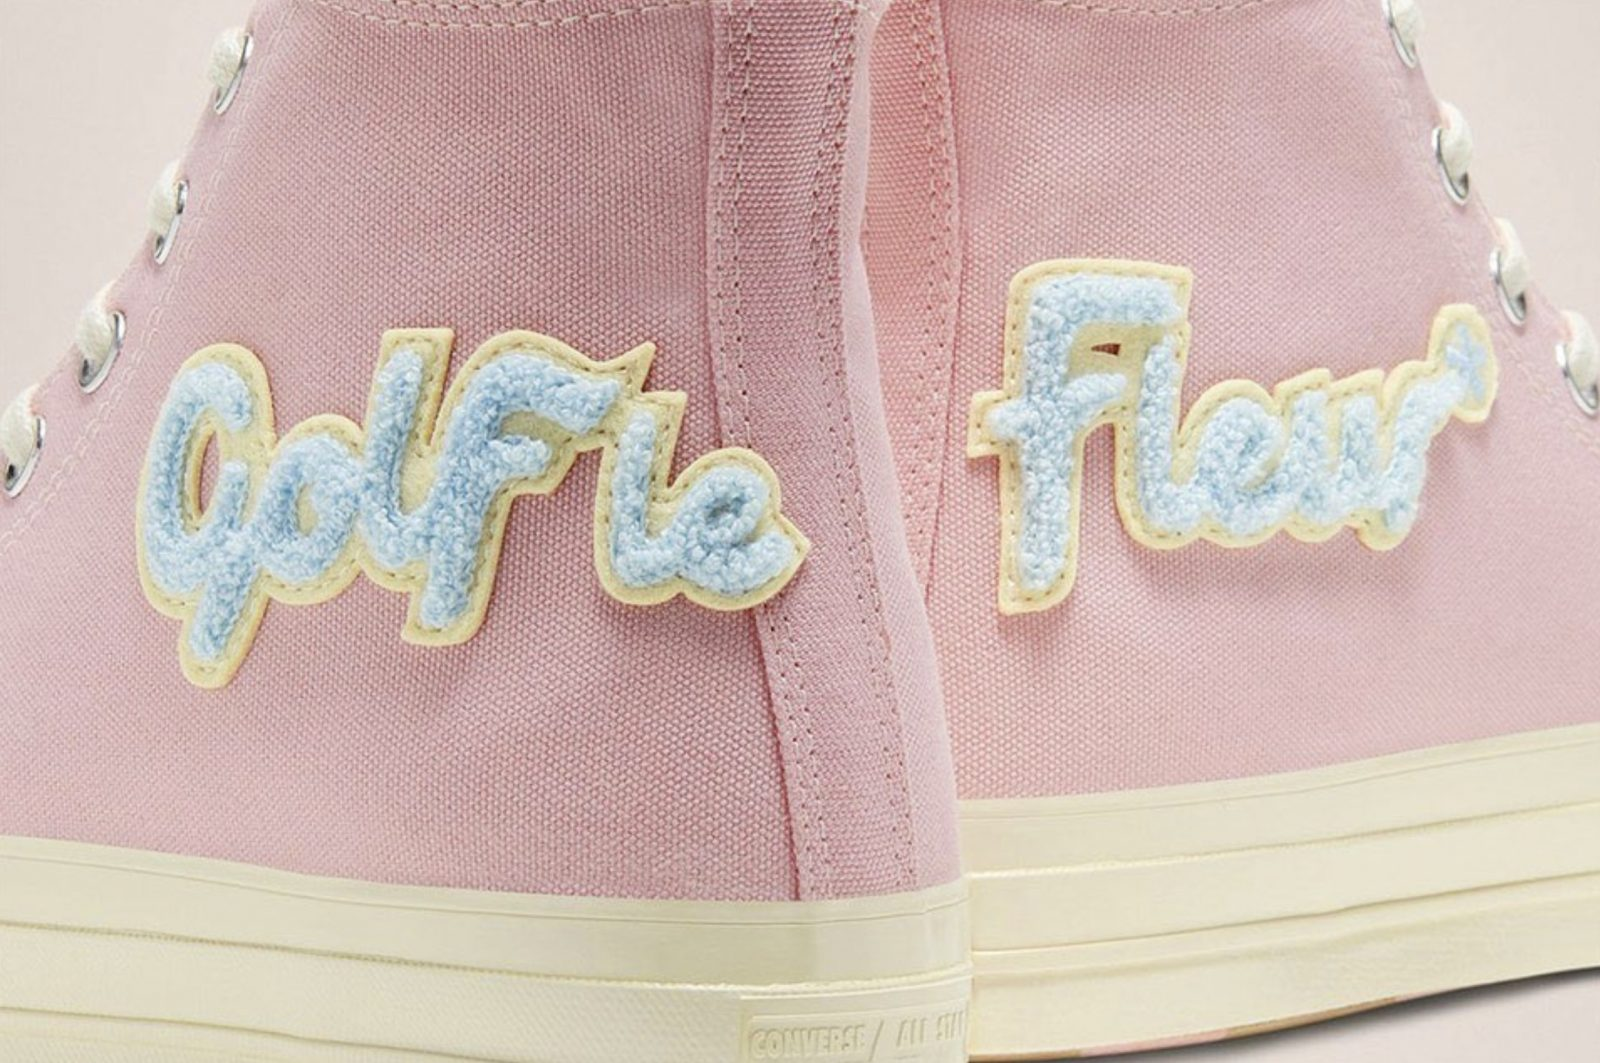 A Brand New Pink GOLF le FLEUR x Converse Chuck Taylor Is Here To Steal Our Hearts